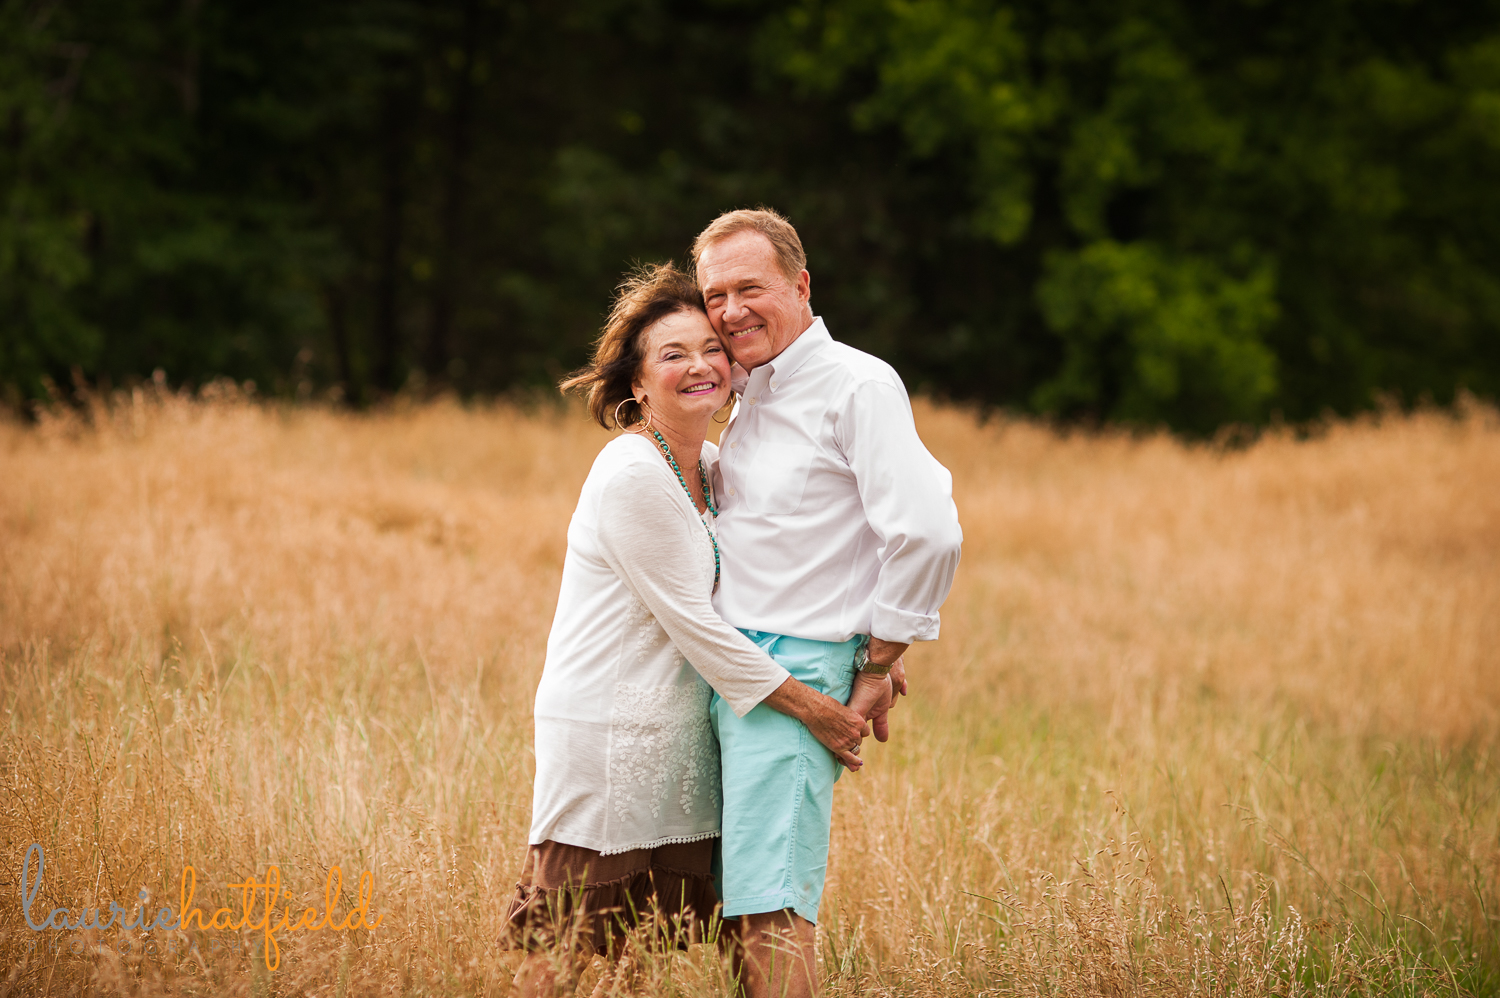 grandparents married 50 years | Huntsville family photographer